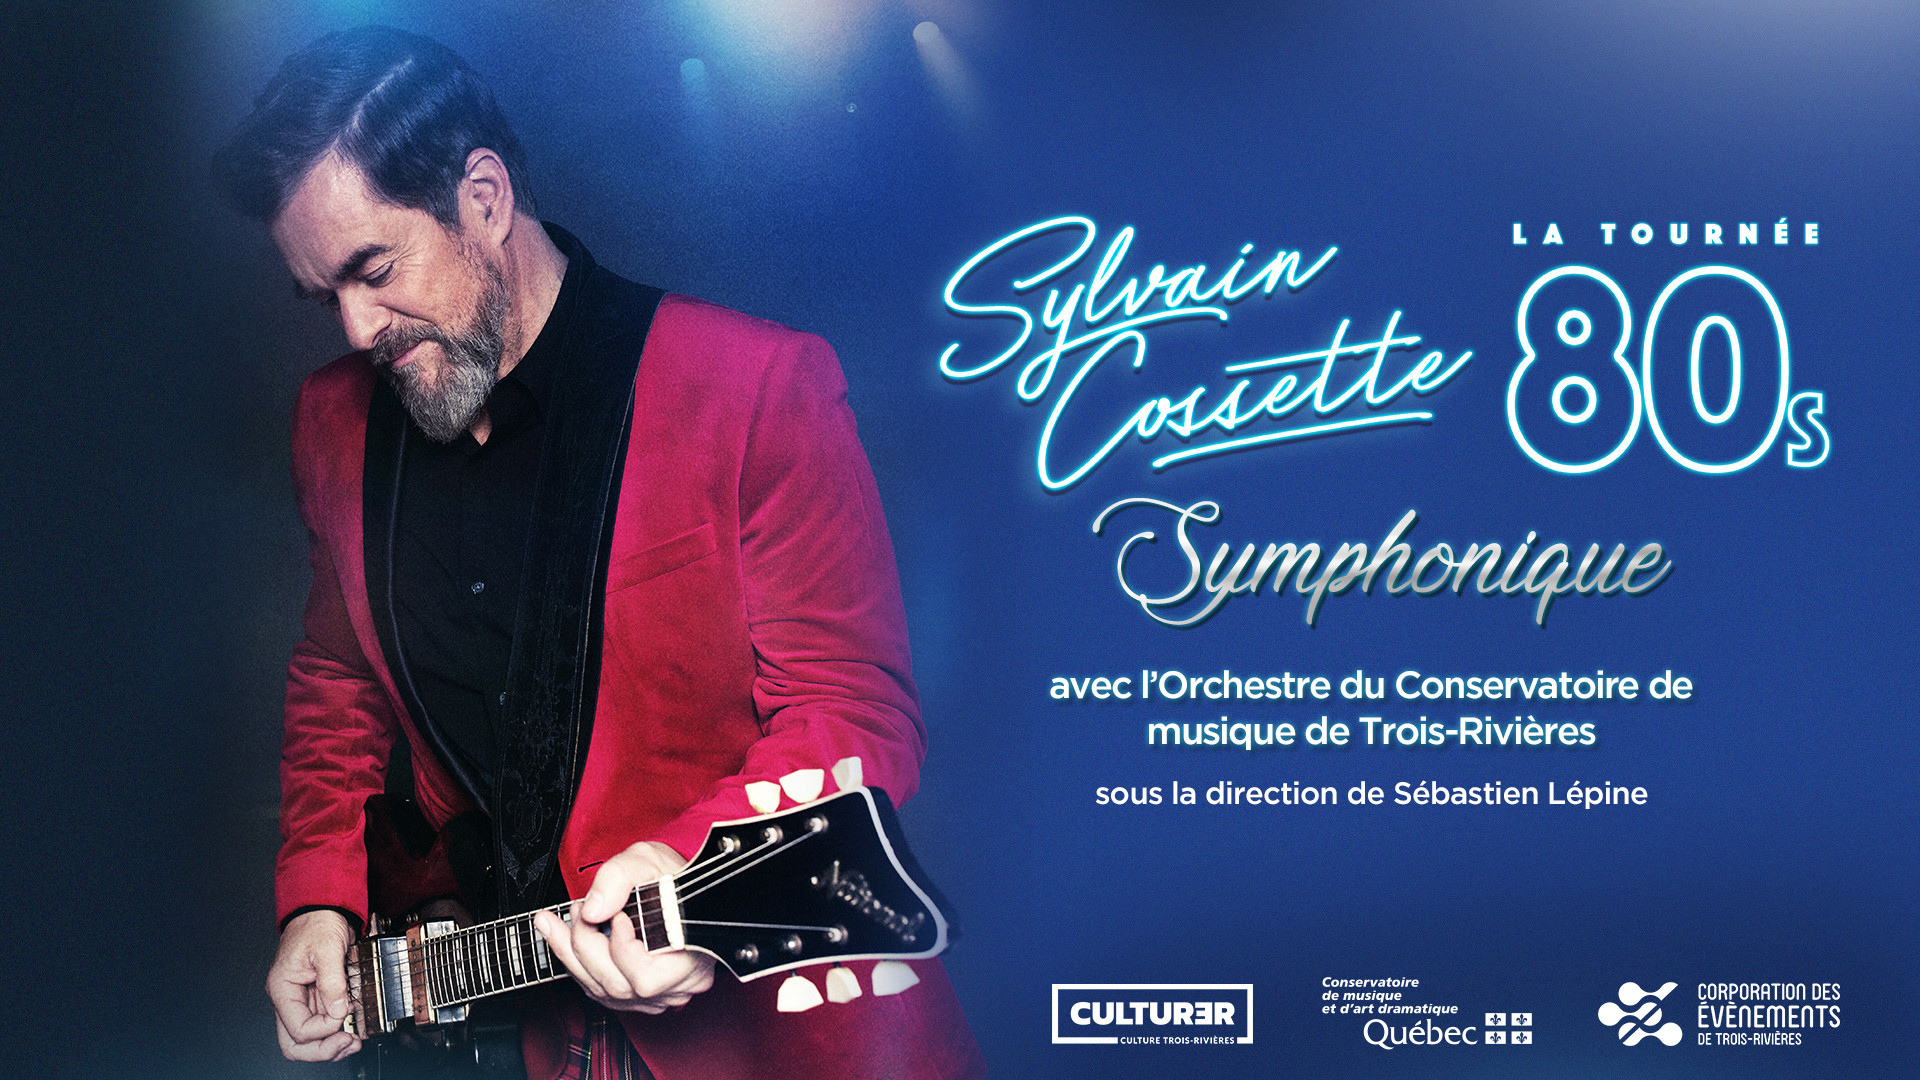 La tournée 80s de Sylvain Cossette en version symphonique